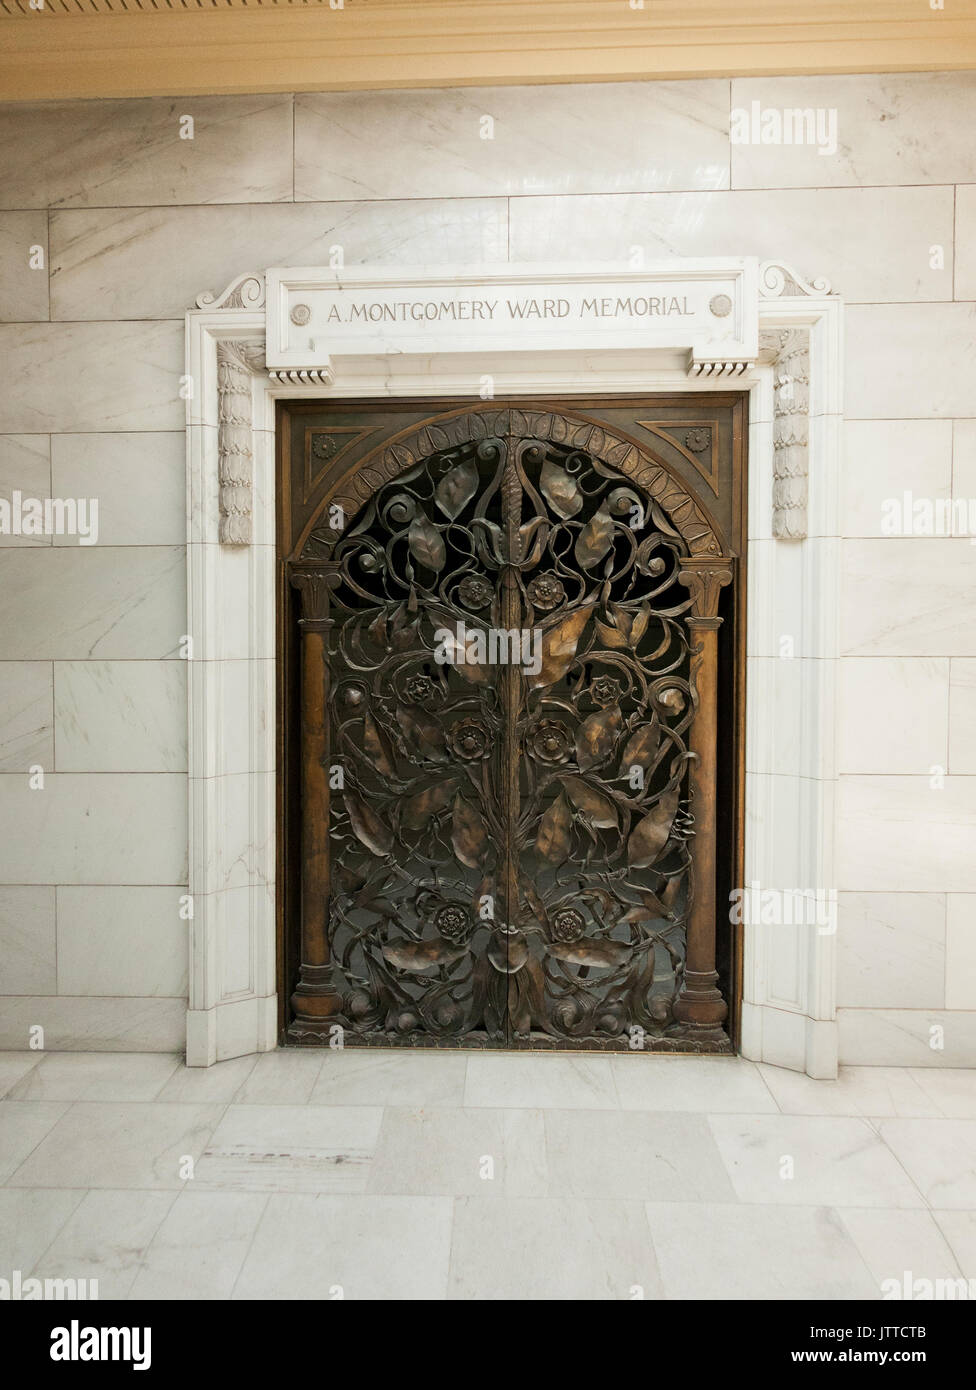 Facade of Montgomery Ward tomb at Rosehill Mausoleum in Chicago, Illinois. - Stock Image